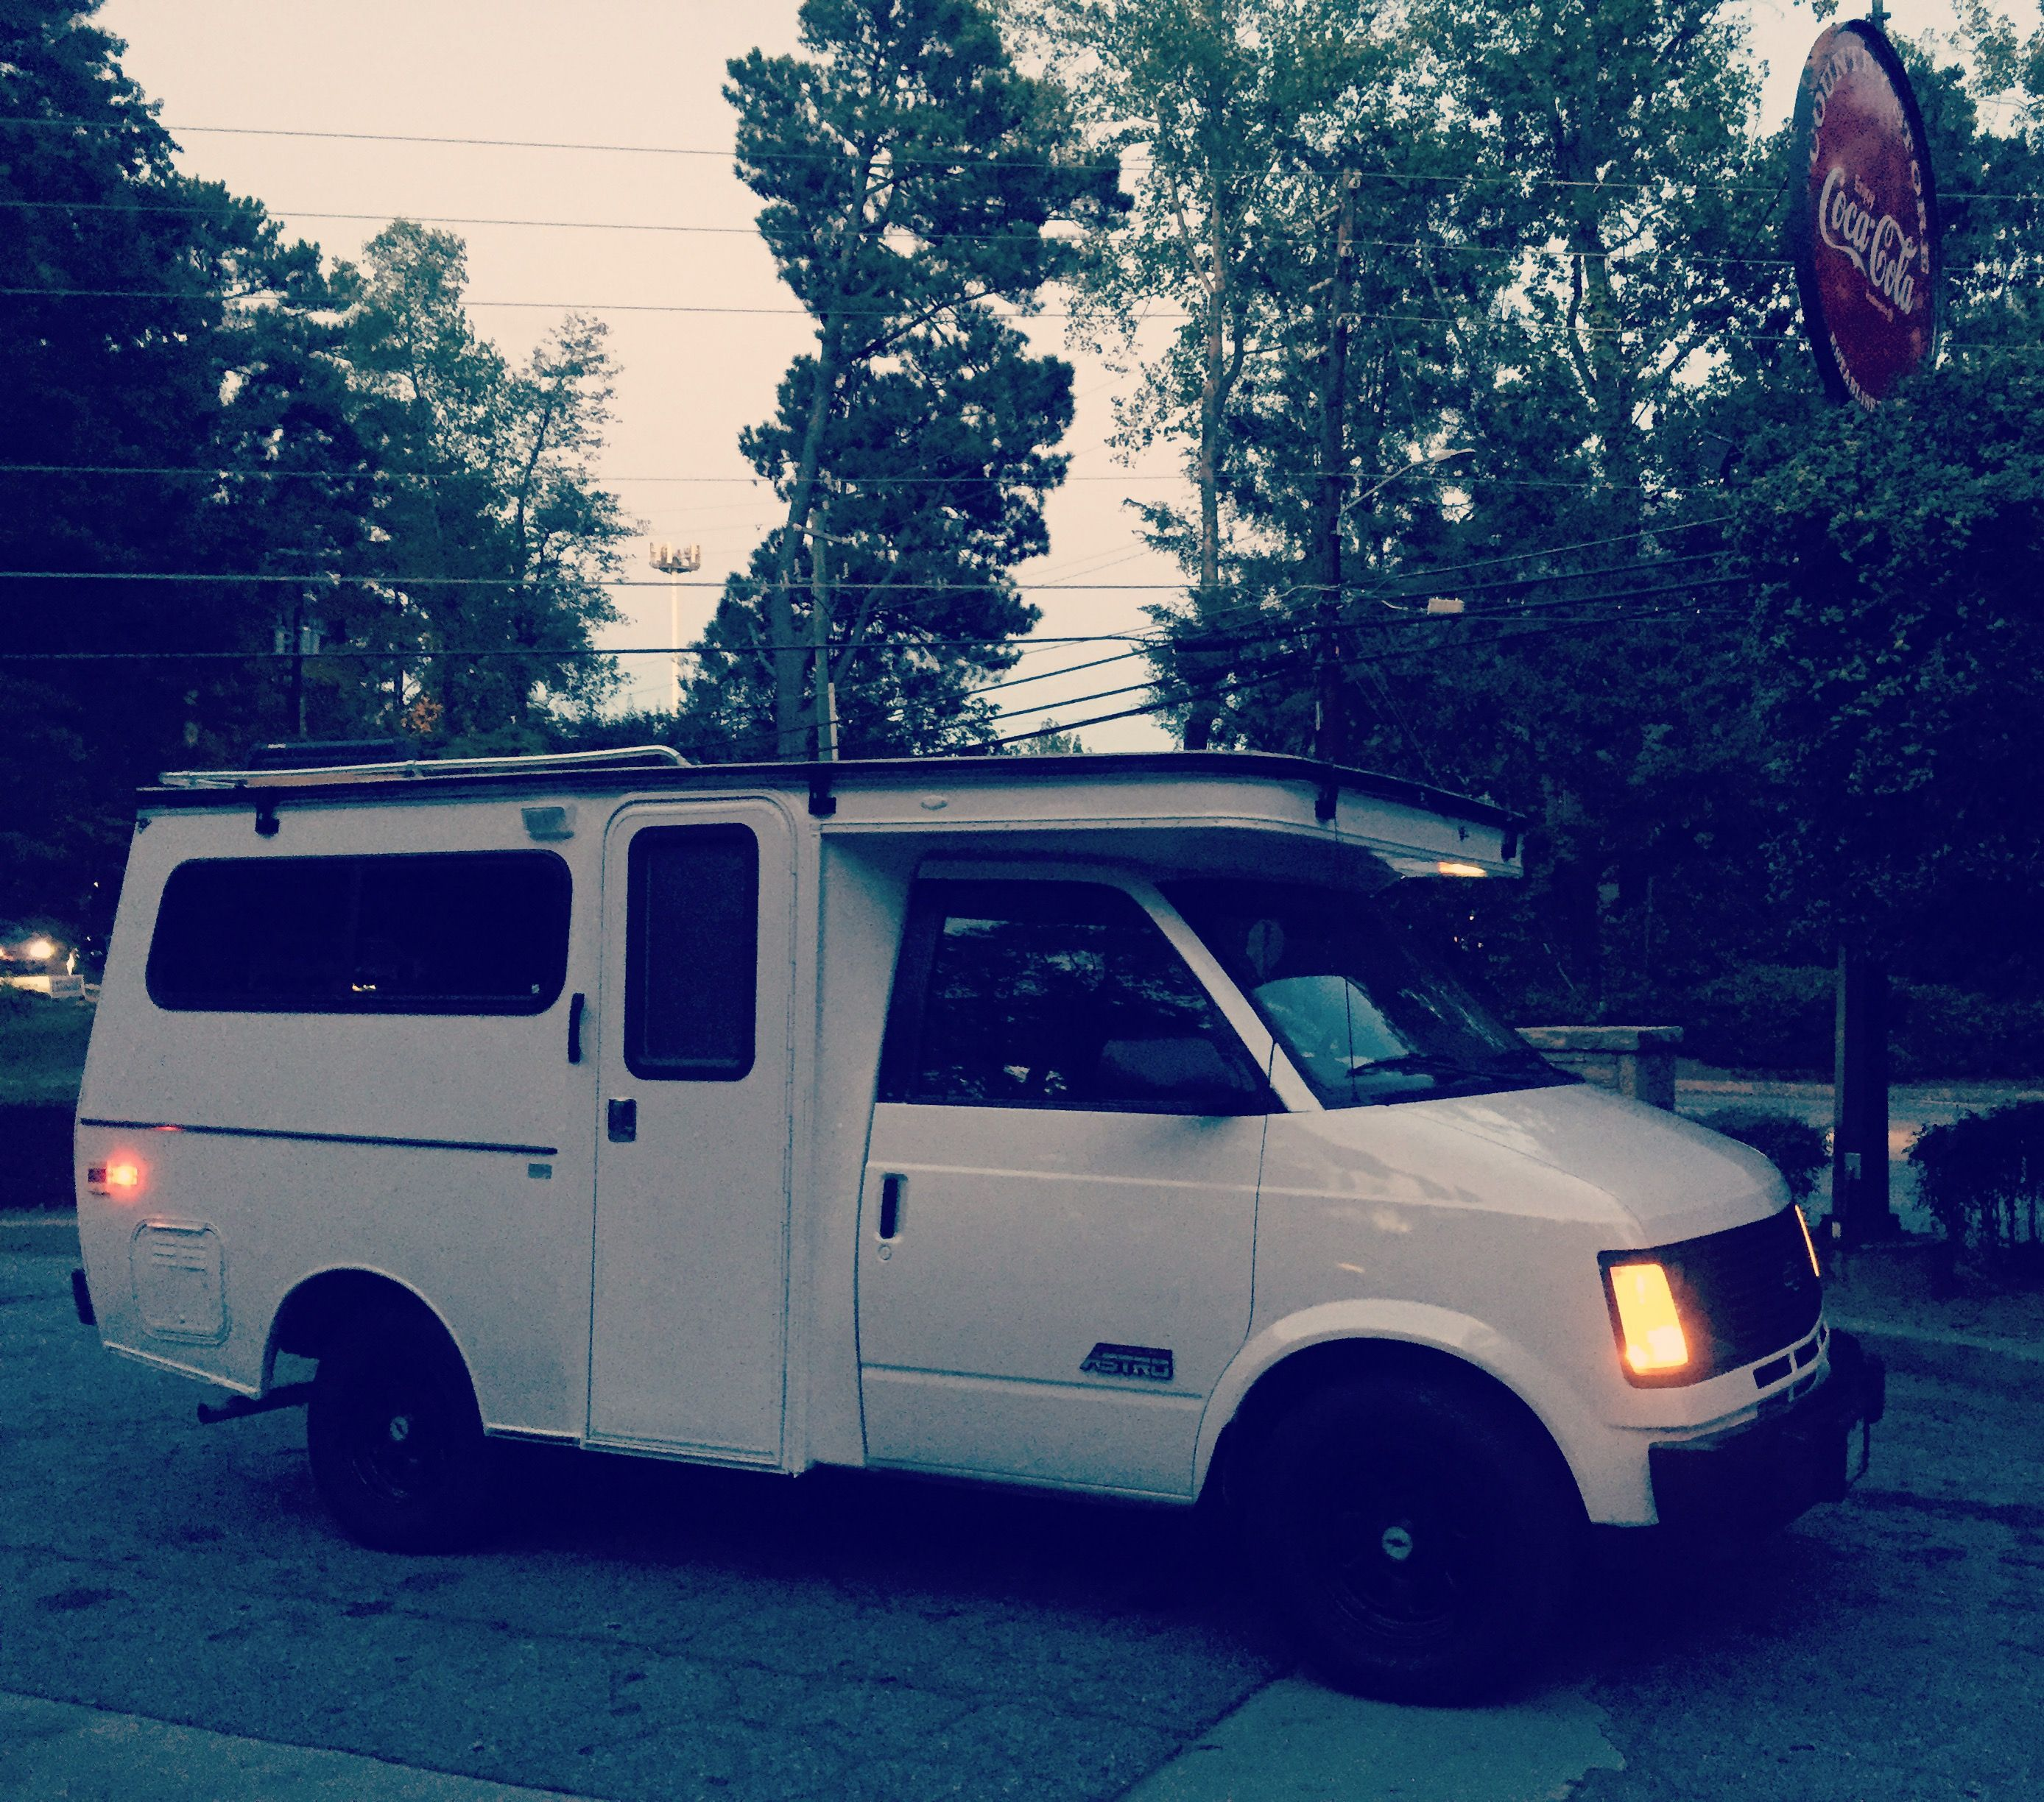 medium resolution of 1992 chevy astro tiger gt provan awd rv camper van full kitchen heat bath shower in 16 ft of space compare to sportsmobiles and sprinter 4x4 vans but